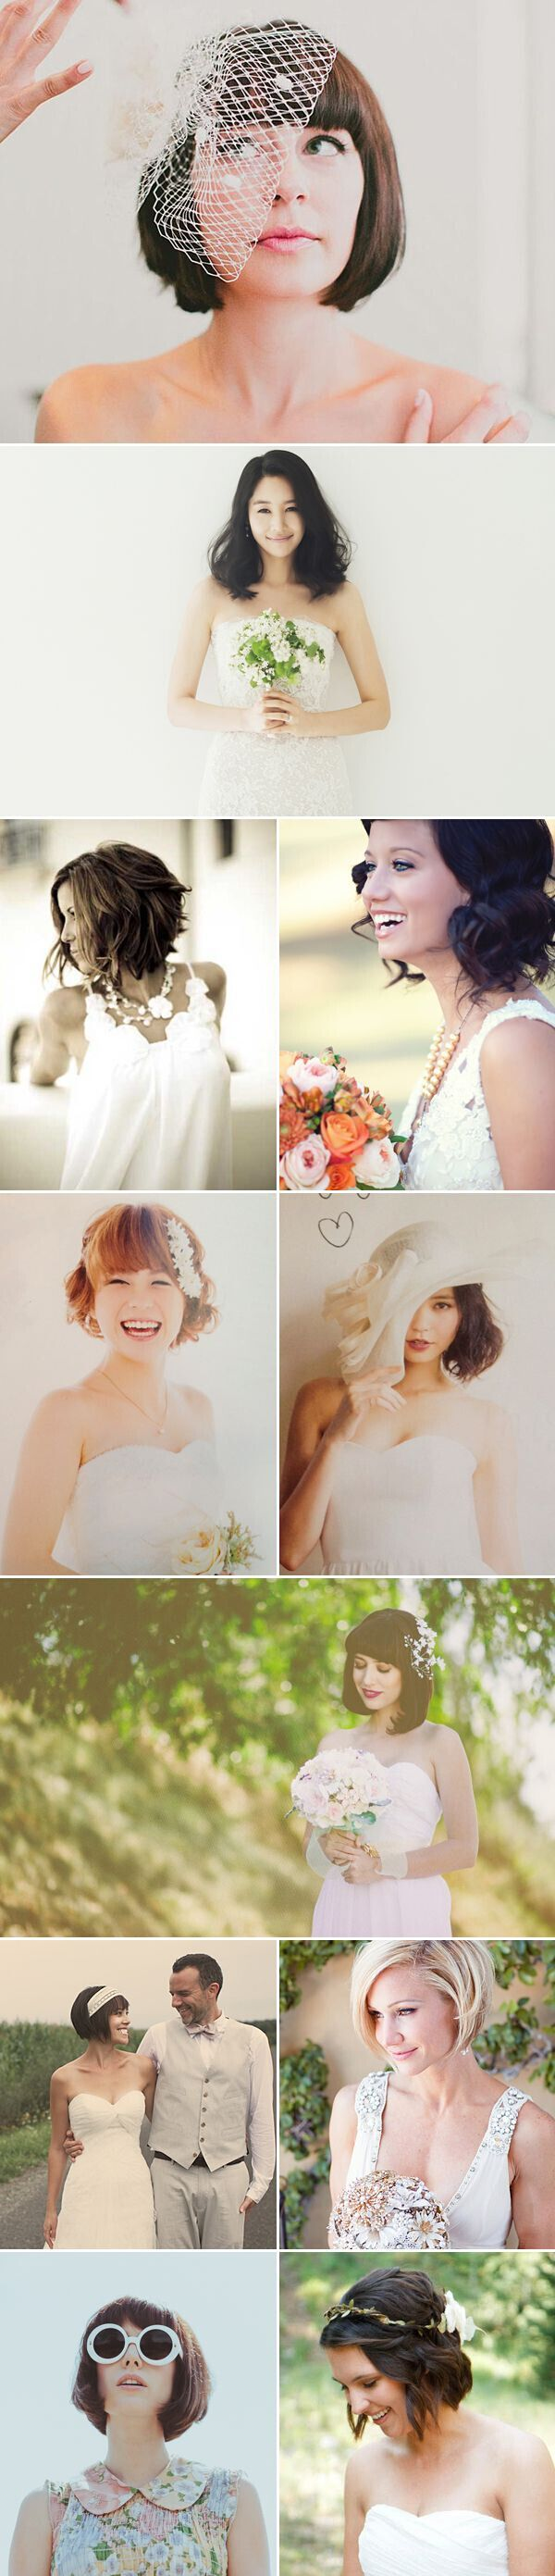 Short bob hairstyles for the wedding